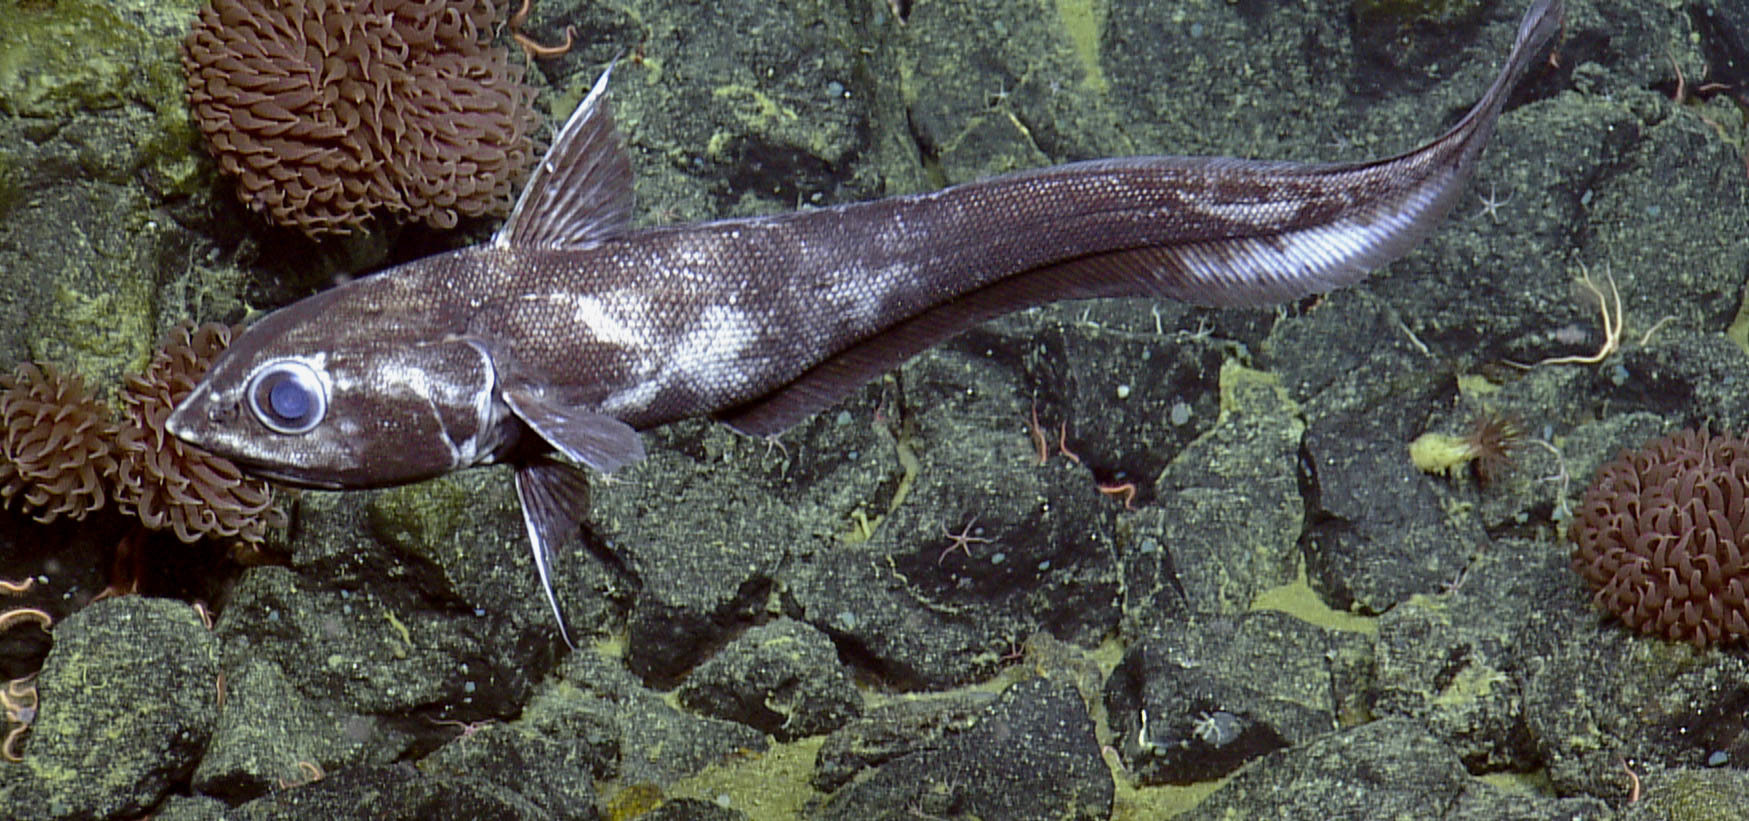 Pacific grenadier swimming above rock substrate